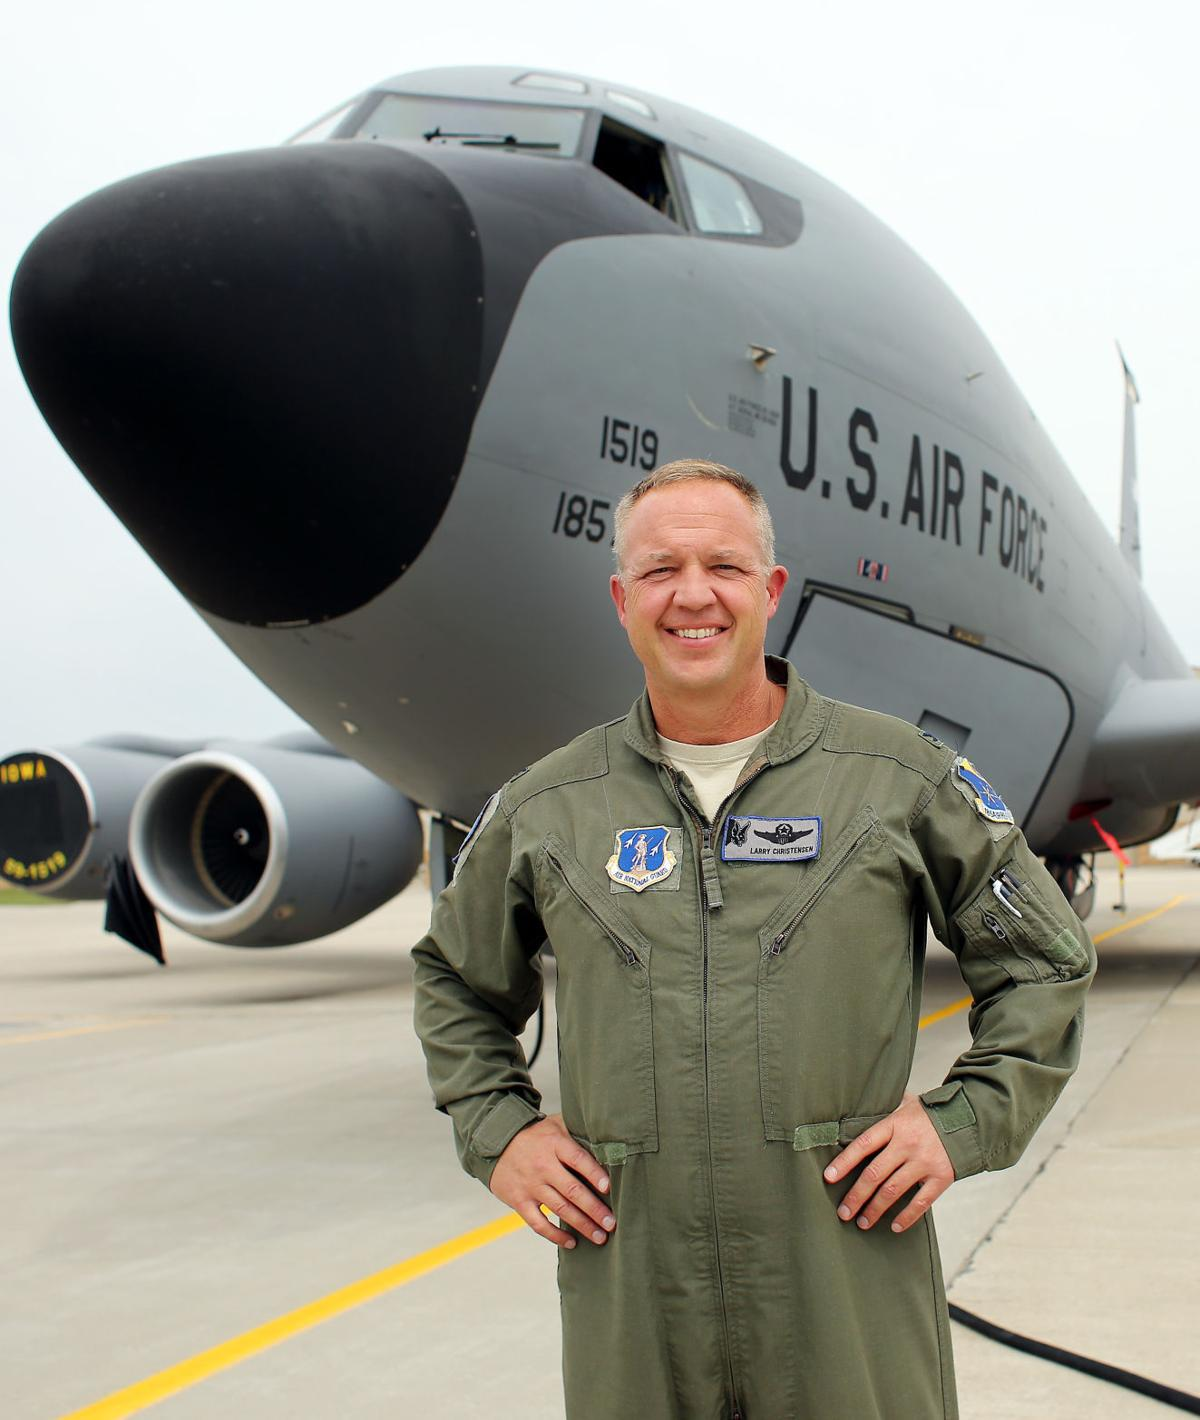 Photos 185th Refueling Wing Kc 135 News